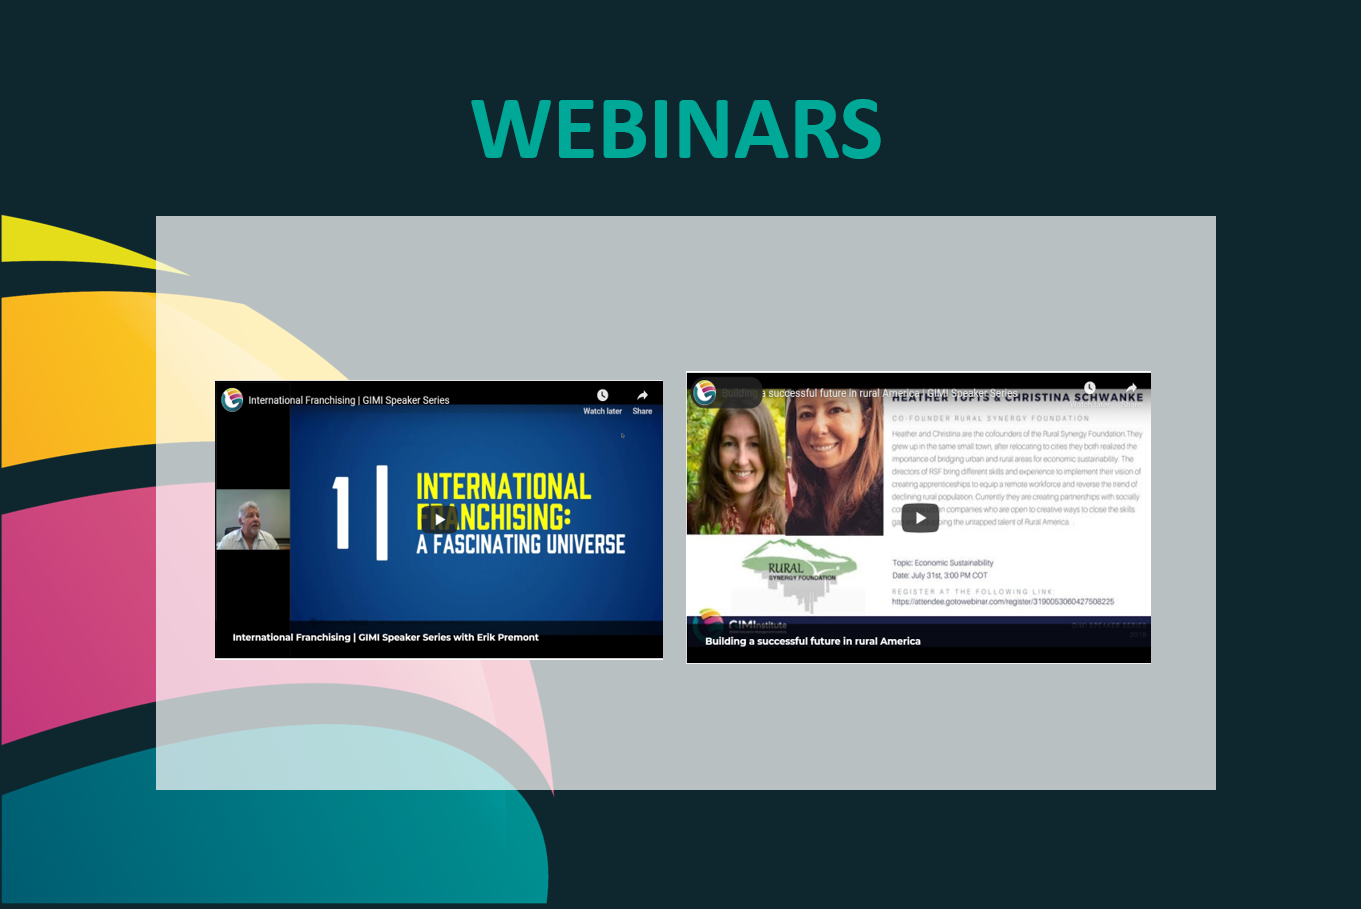 Webinars and Innovation Speaker series GIMI